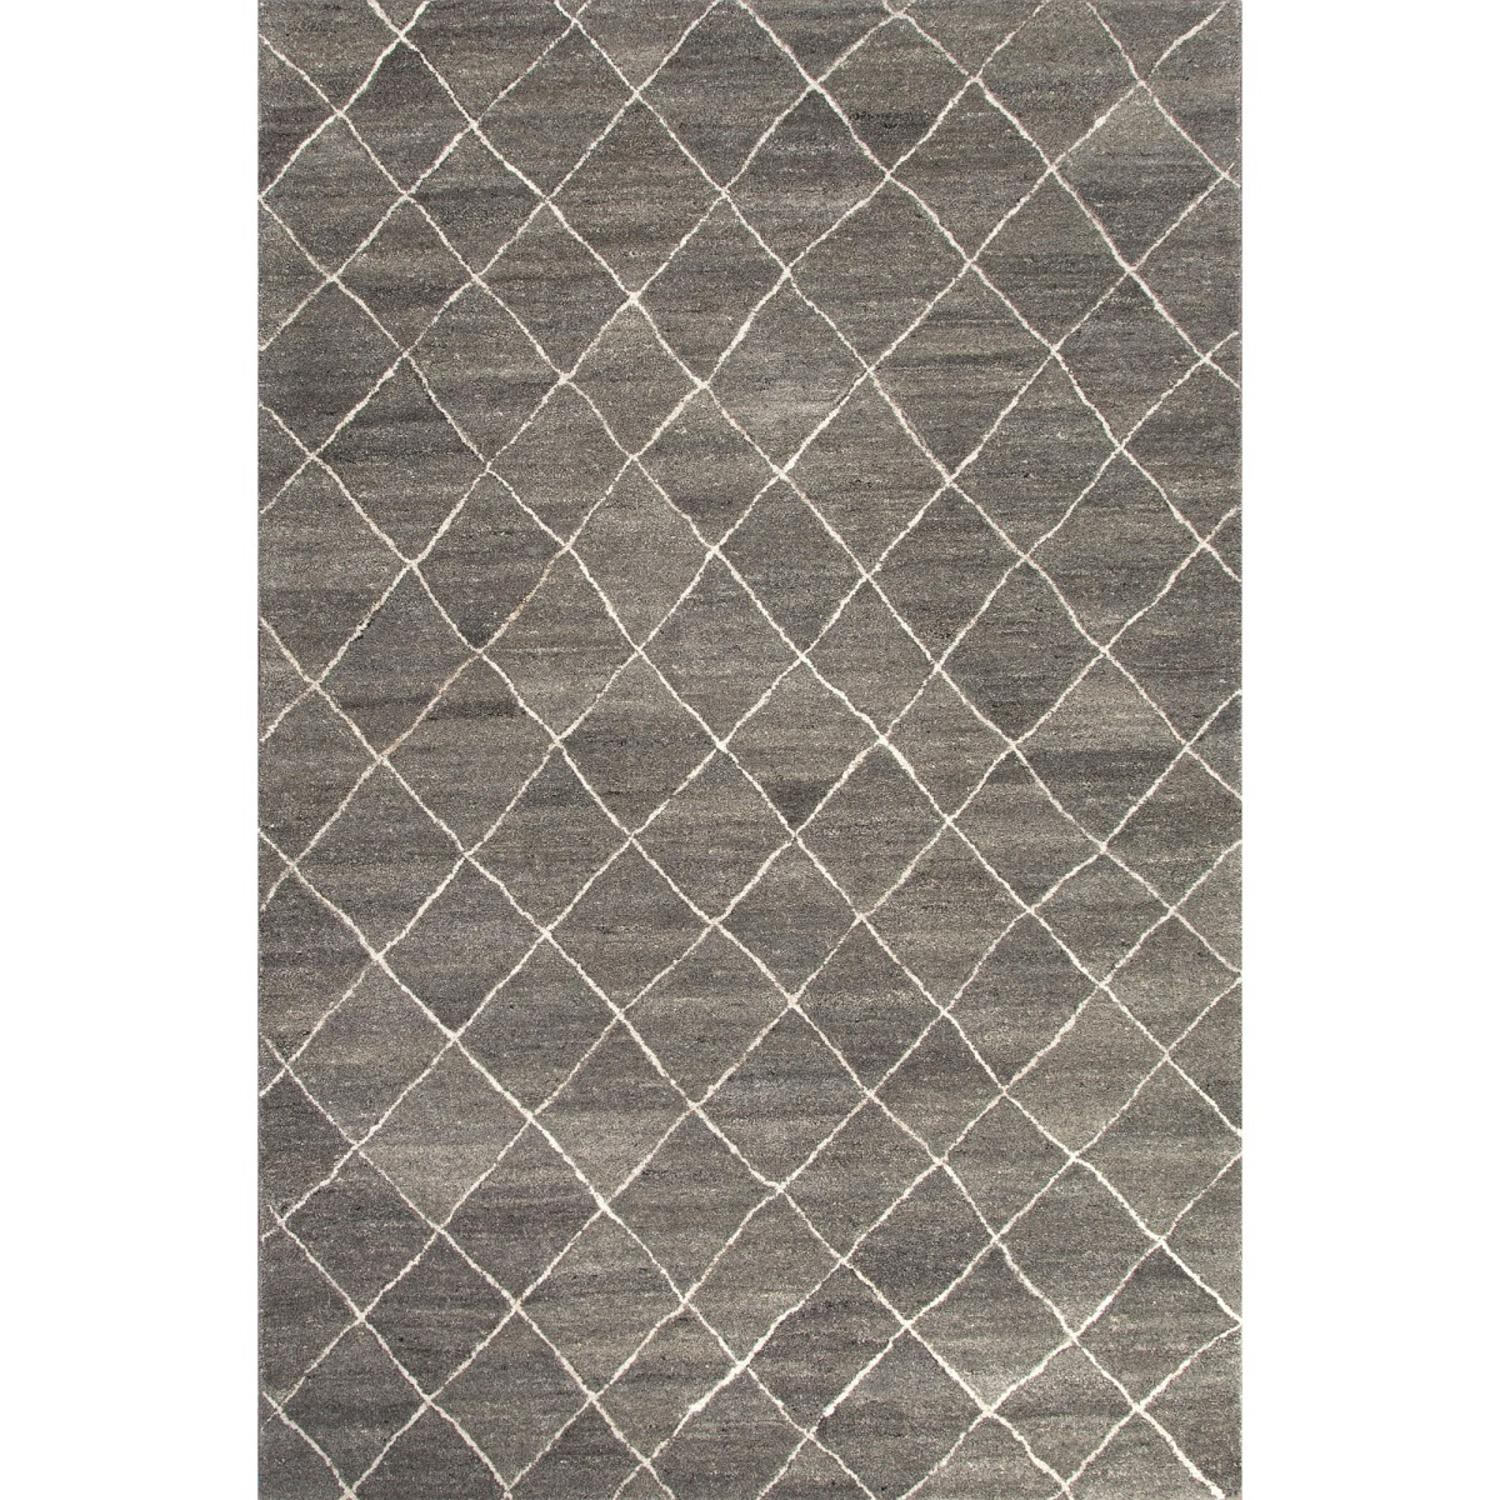 8' x 10' Crushed Stone Gray and Snow White Modern Gem Hand Tufted Wool Area Throw Rug